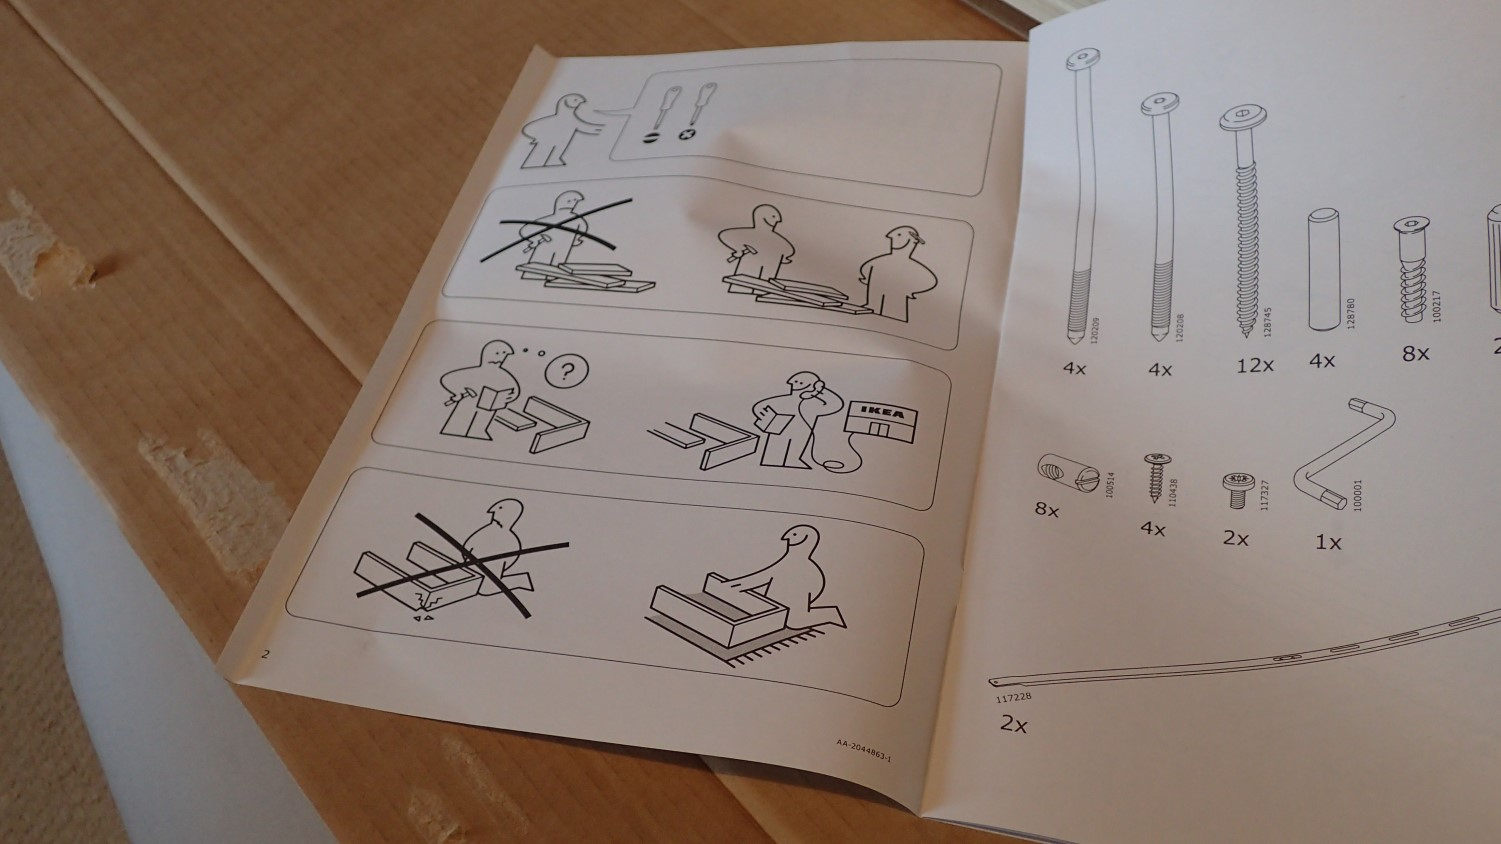 ikea bed assembly instructions